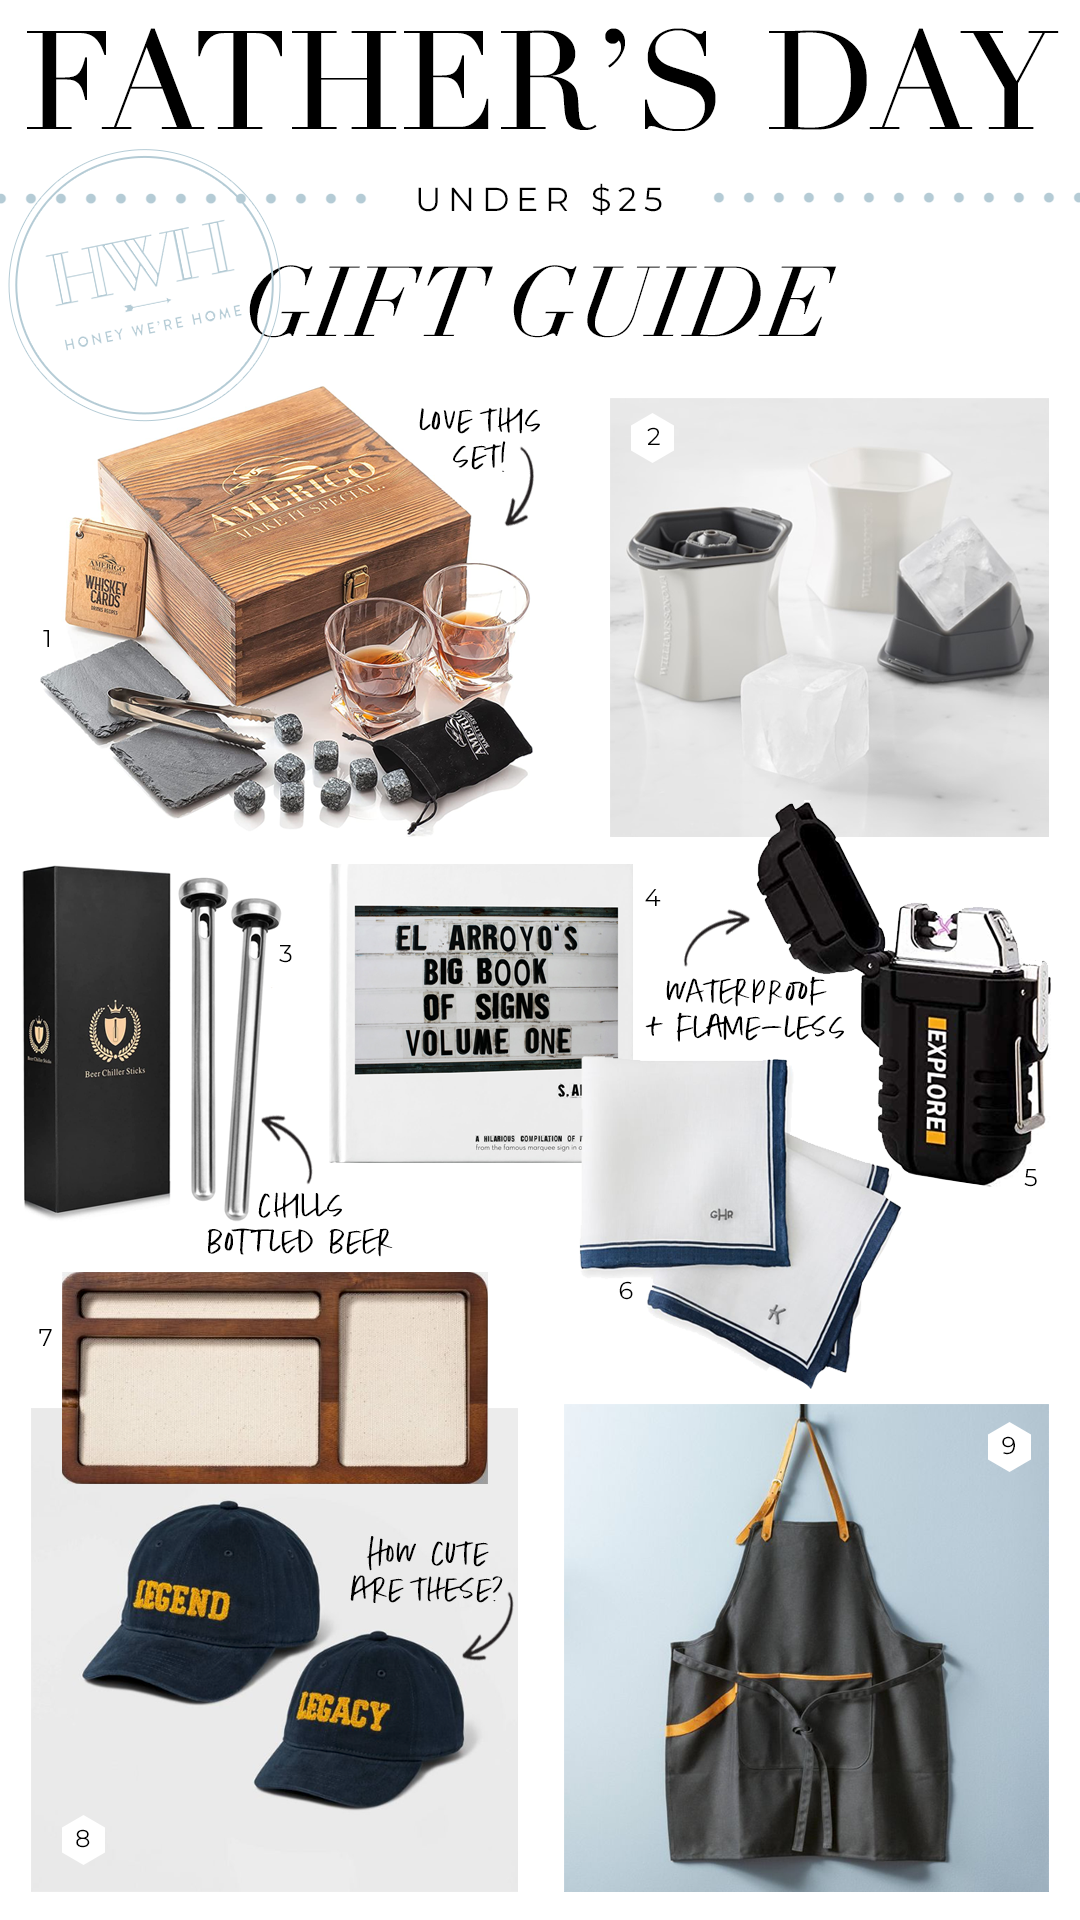 Father's Day Gift Guides Under $25 & $50